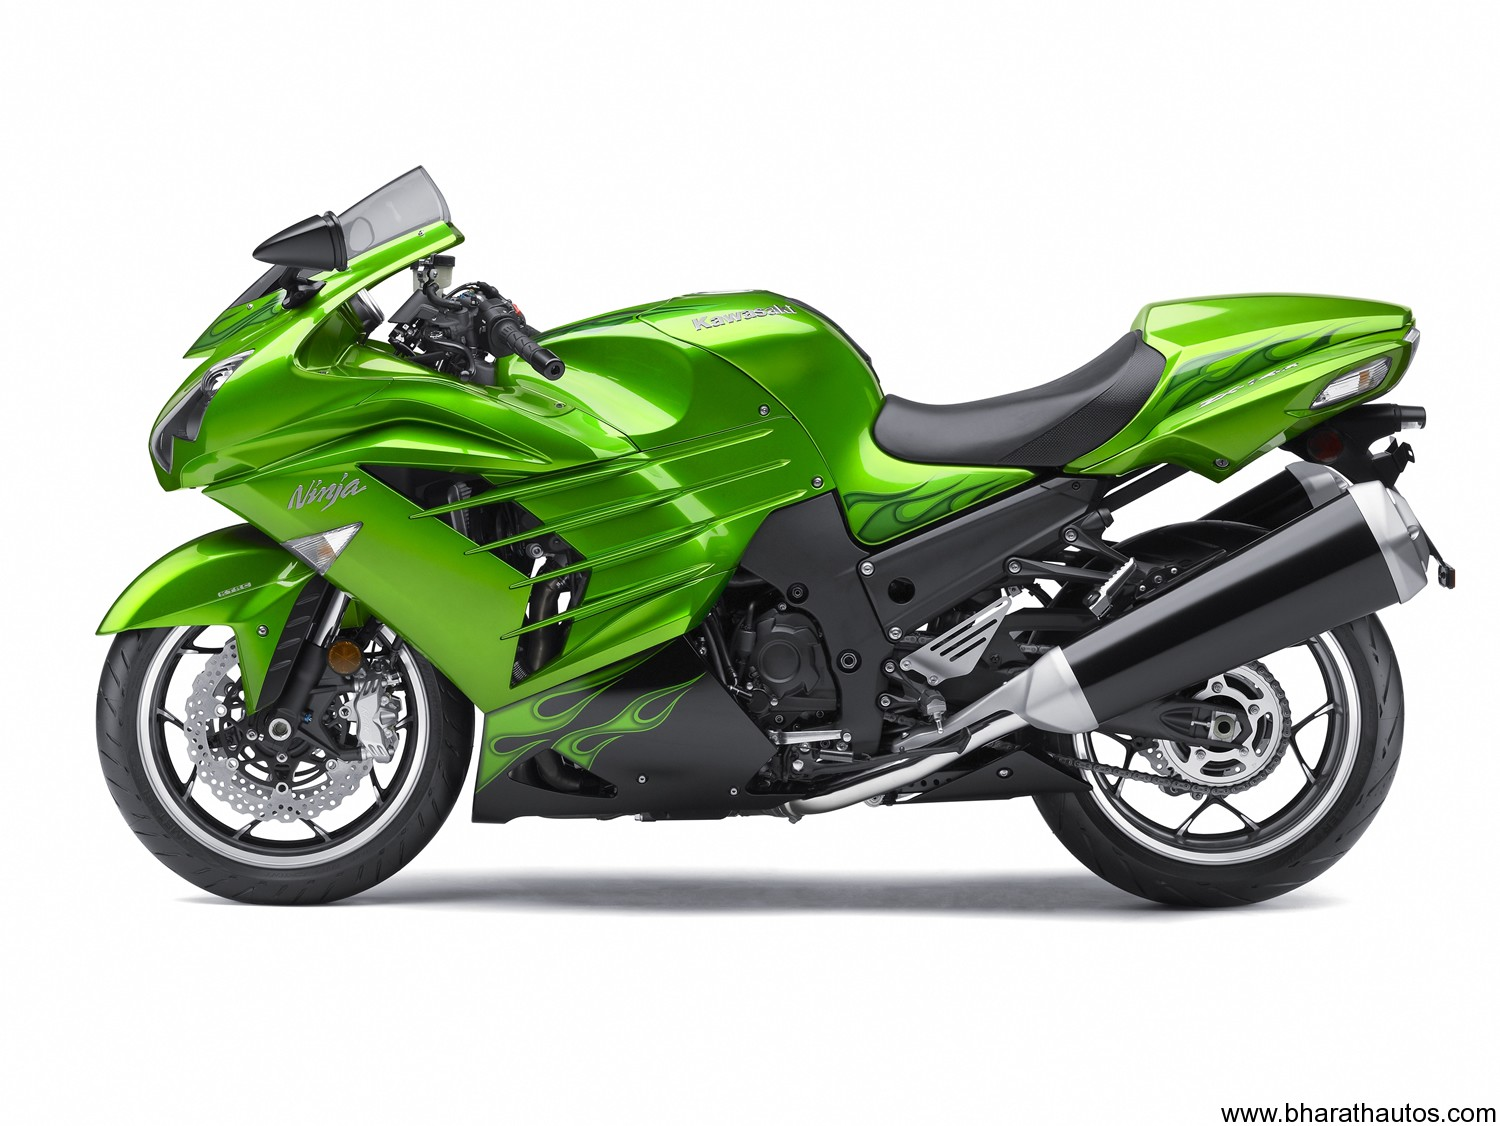 2012 Kawasaki Zzr1400 Is The World S Fastest Motorcycle